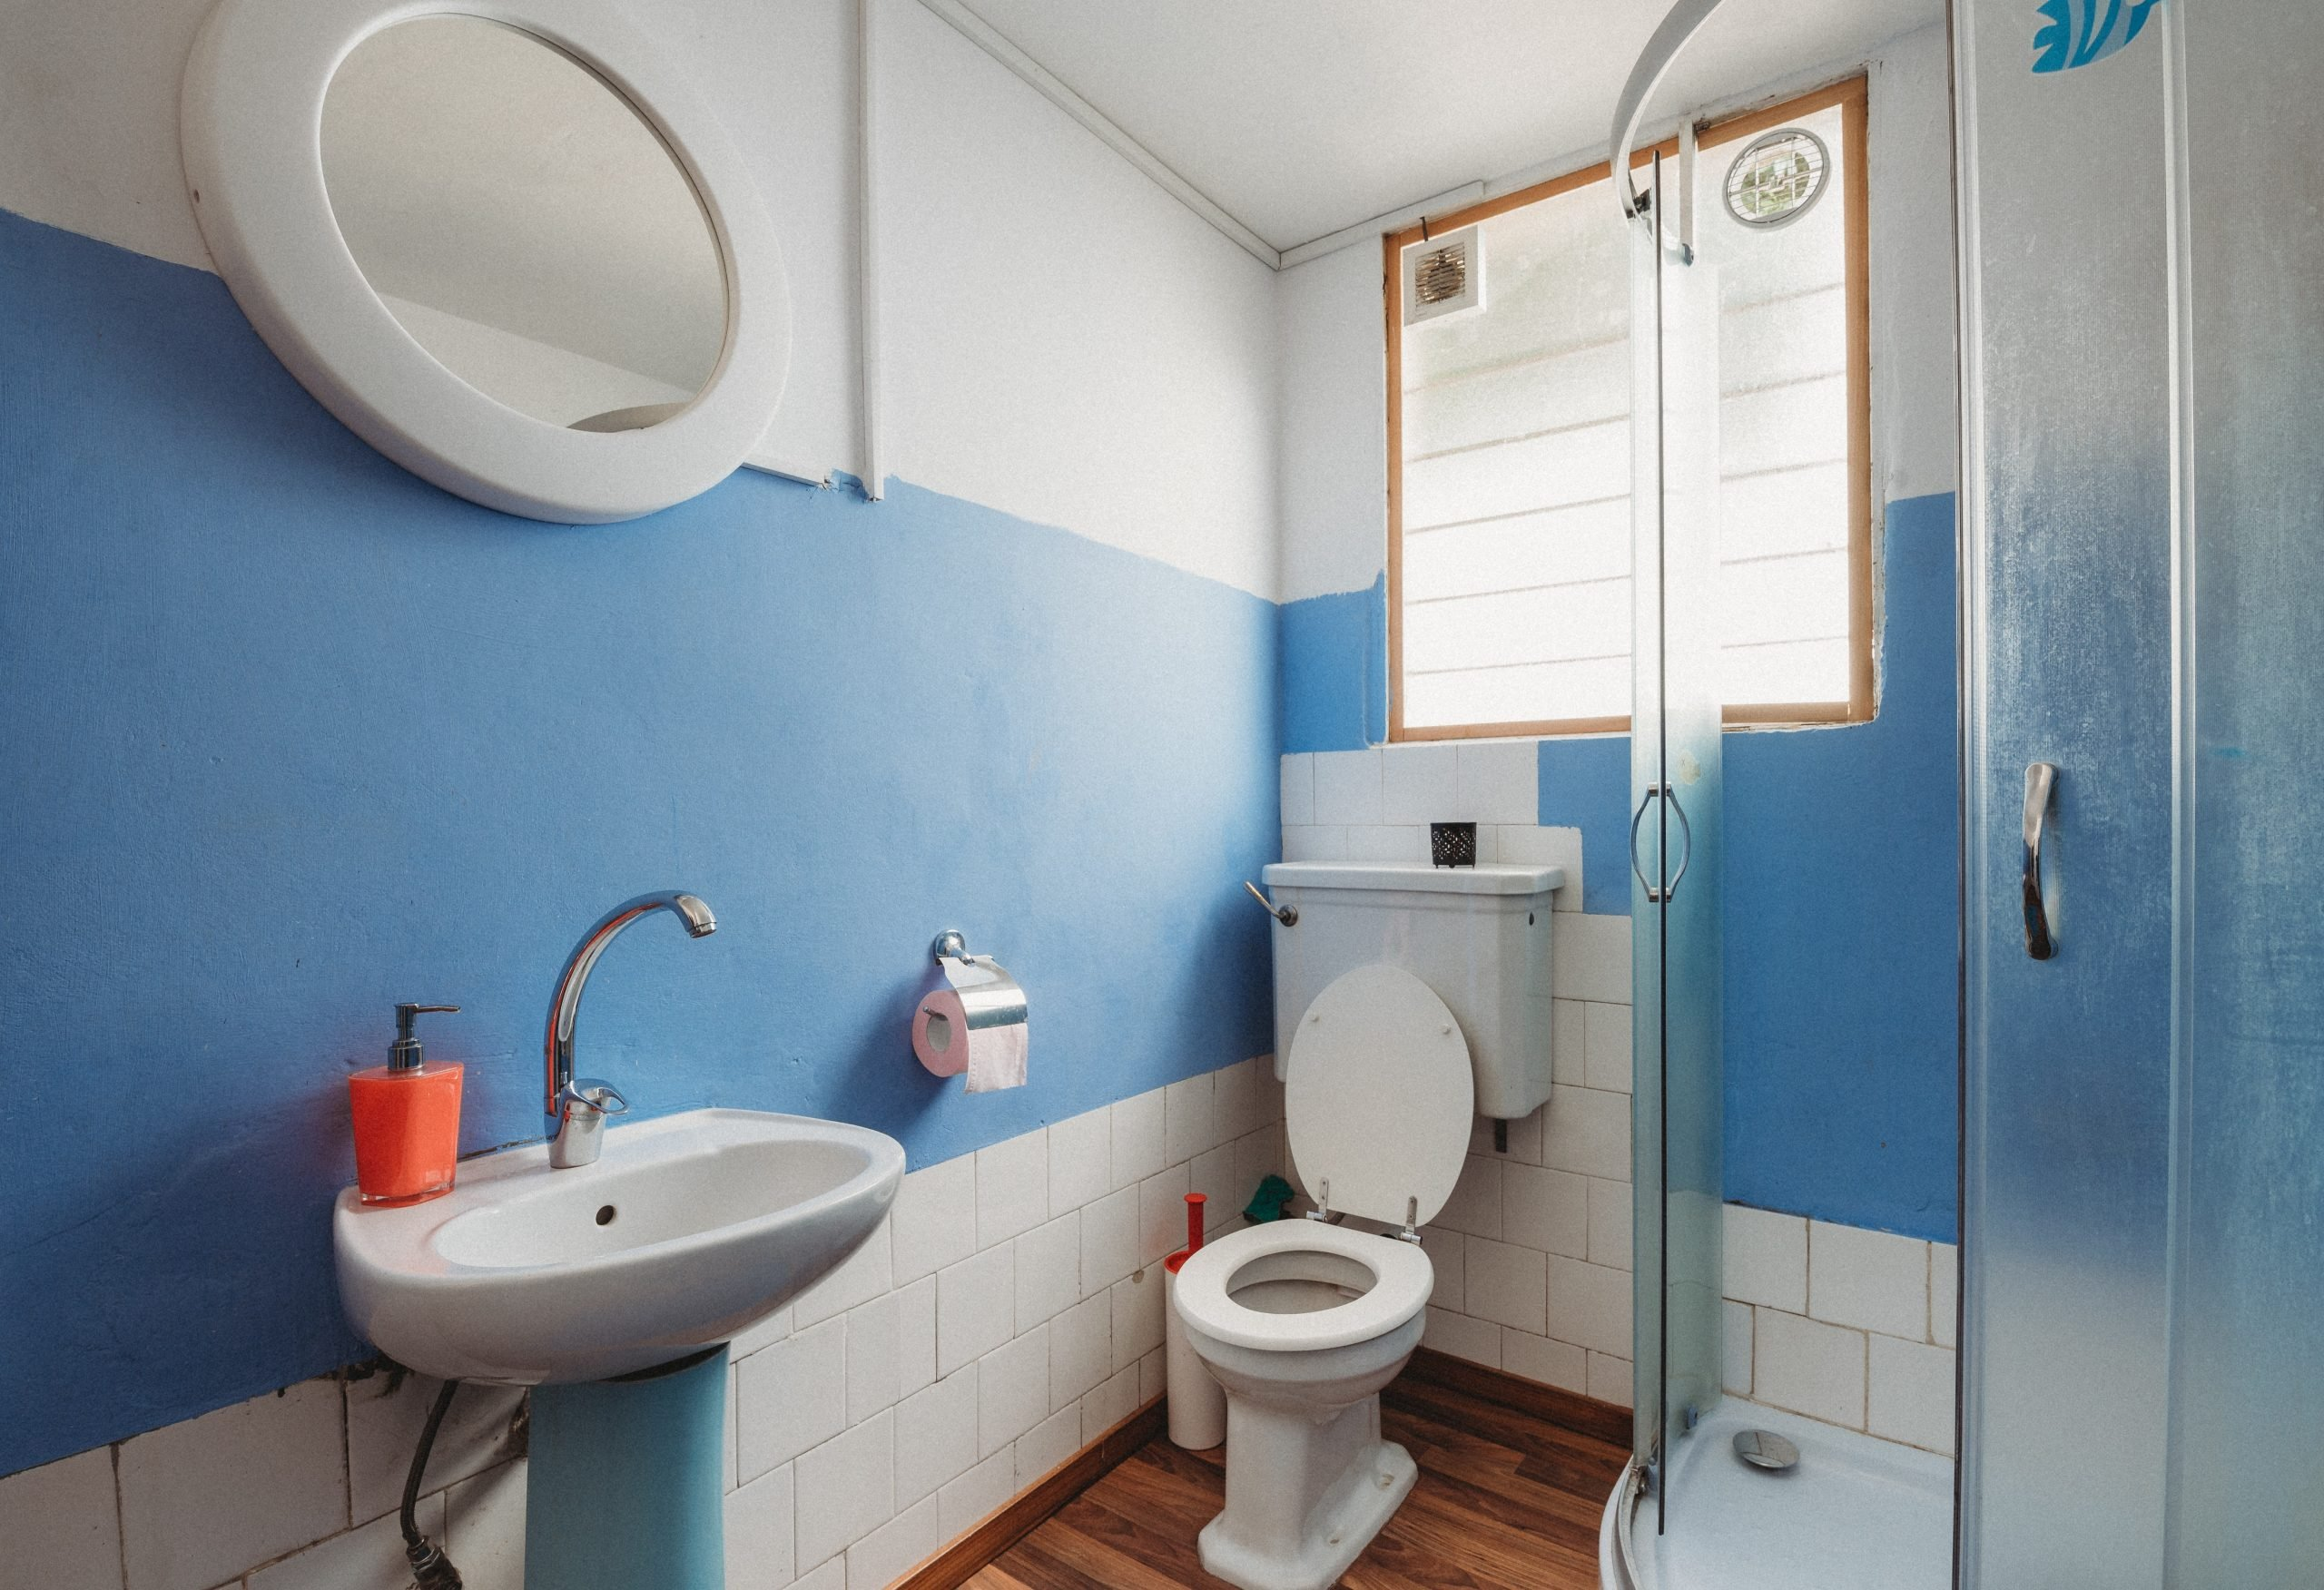 Toilet Dimensions and Clearances You Must Know